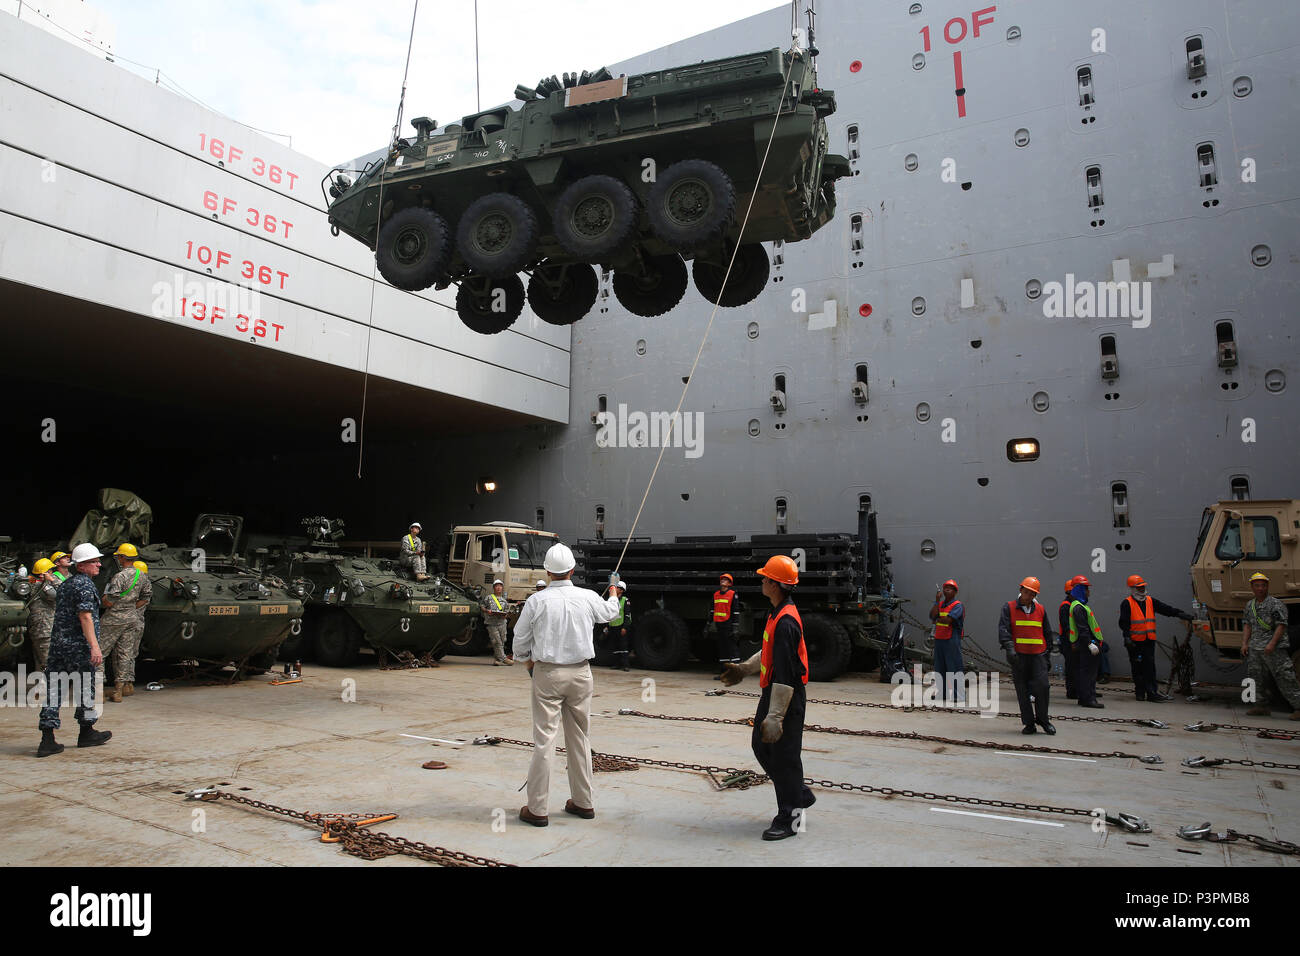 160712-N-IX266-005 SATTAHIP, Thailand—An M1126 Stryker is lowered into general purpose, heavy lift ship MV OCEAN GLORY during a backload of equipment at Chuk Samet, here, from exercise Hanuman Guardian, July 12. Military Sealift Command's contracted voyage-charter MV OCEAN GLORY recently conducted a backload of about 250 items in Thailand as part of U.S. Army Pacific's mobility operation PACIFIC PATHWAYS 16-2. (U.S. Navy photo by Grady T. Fontana/Released) - Stock Image